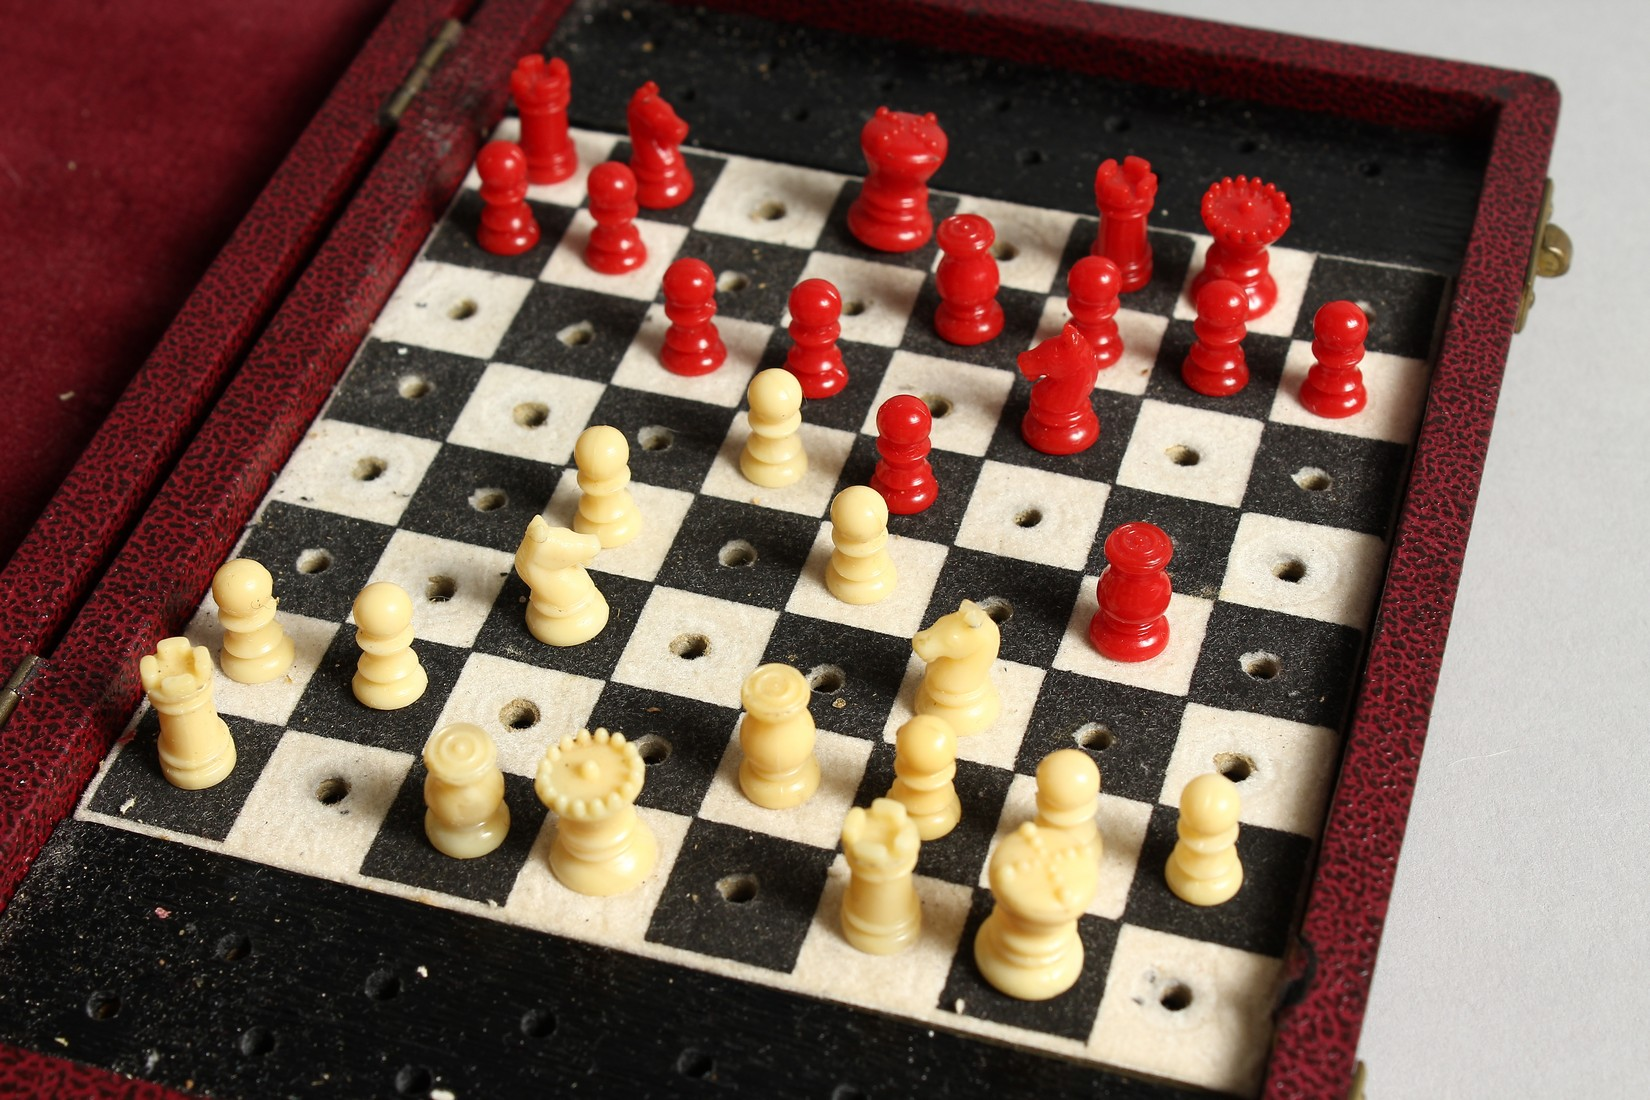 A TRAVELLING CHESS SET - Image 5 of 6